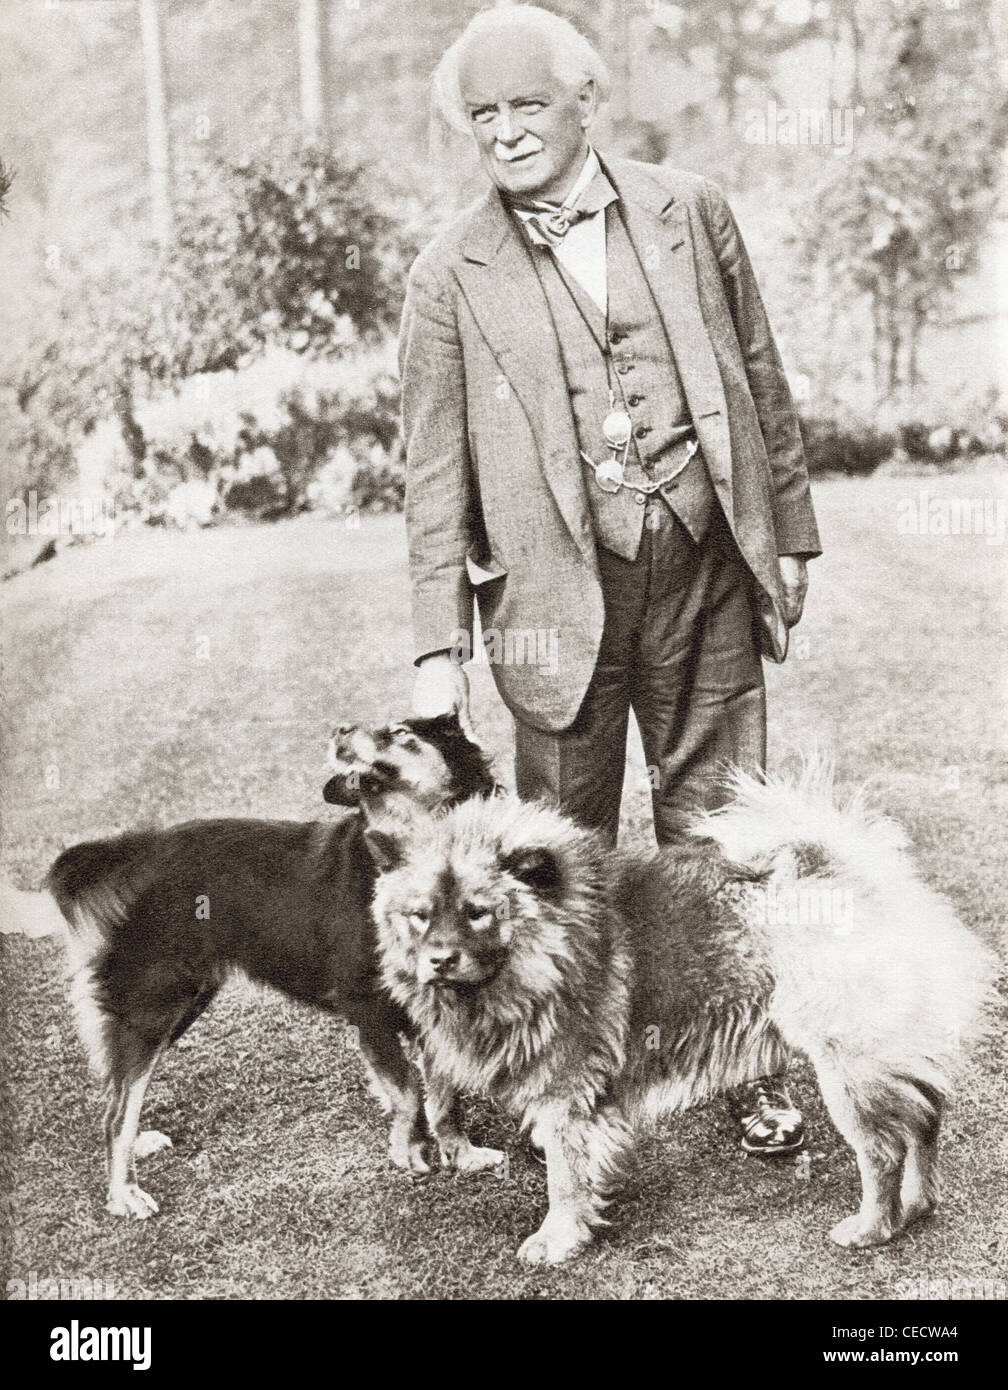 David Lloyd George, 1st Earl Lloyd-George of Dwyfor, 1863 – 1945. British Prime Minister. - Stock Image